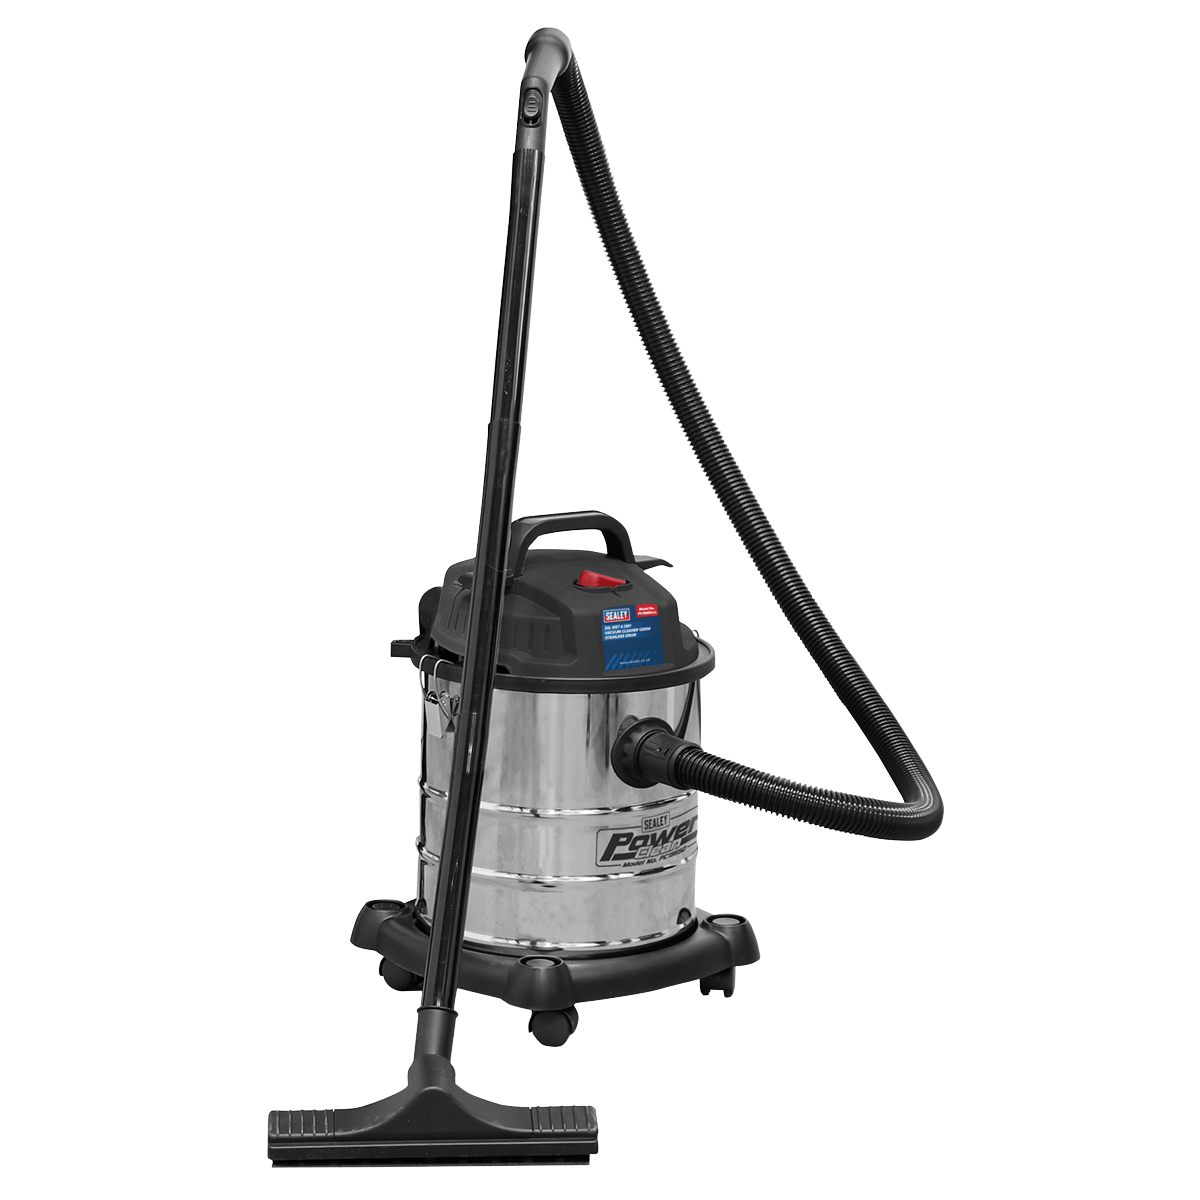 Sealey Vacuum Cleaner Wet & Dry 20L 1200W/230V Stainless Drum PC195SD | High powered, lightweight unit with blower facility. | toolforce.ie